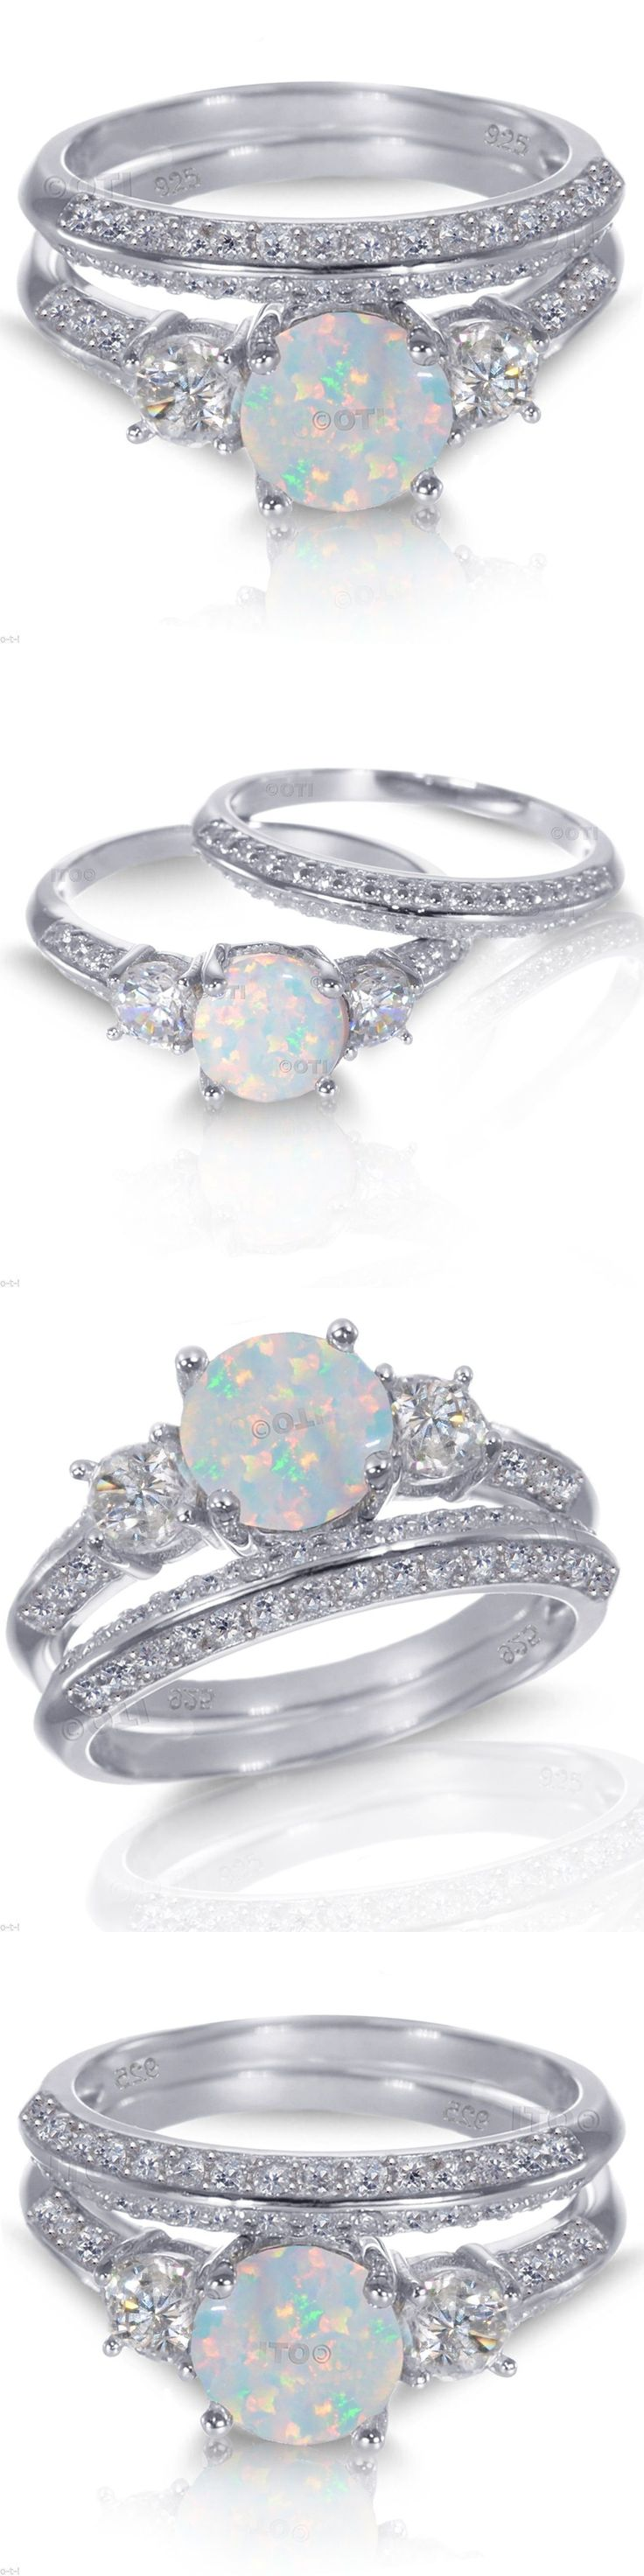 Best 25 Vintage opal engagement ring ideas on Pinterest